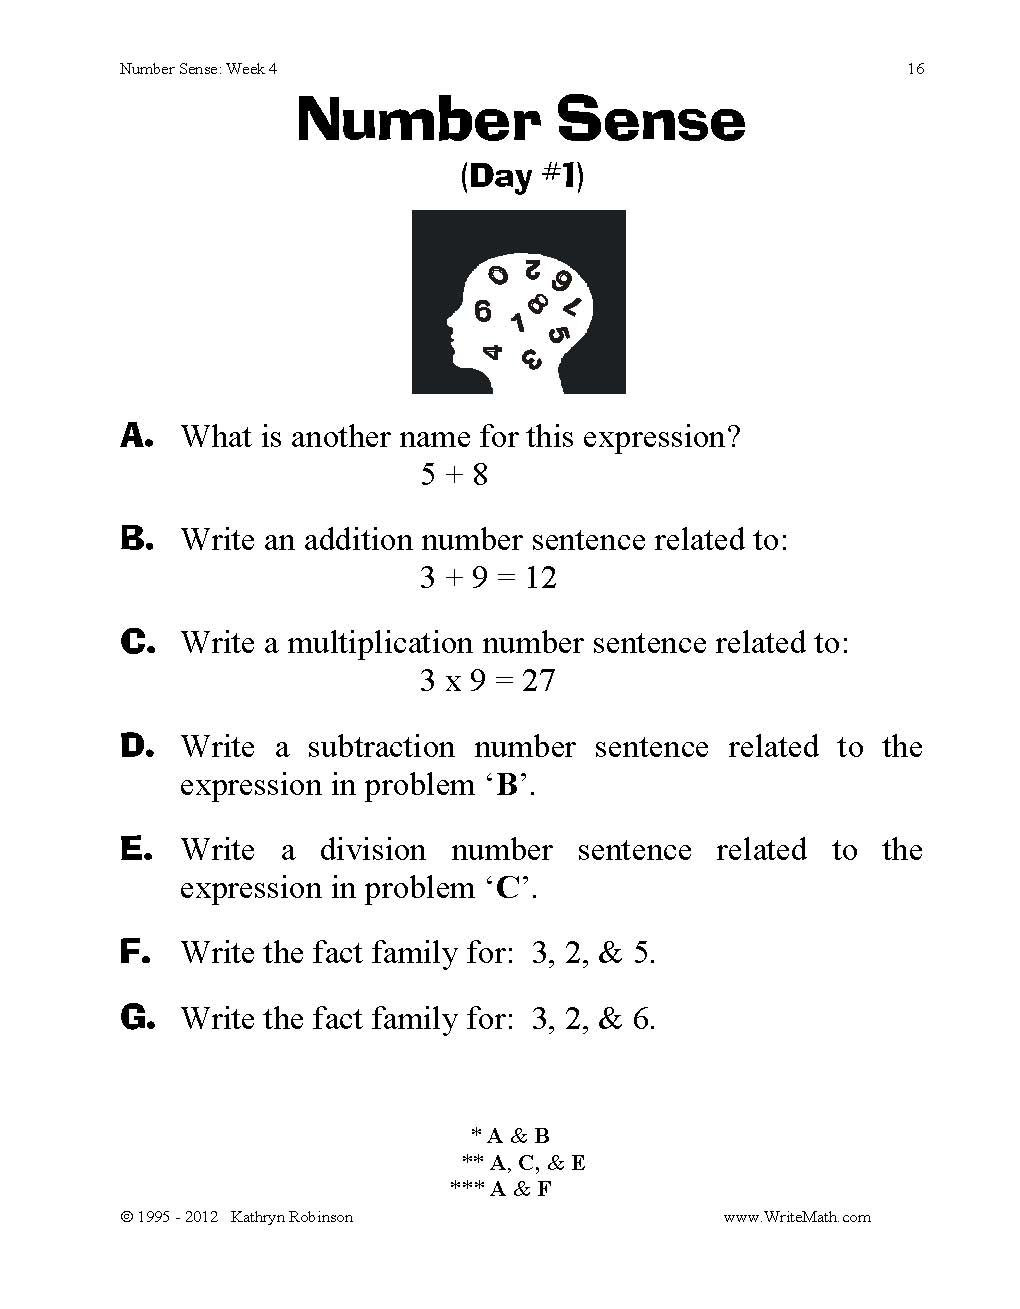 Homophones Worksheet 5th Grade Math Kg2 Train Timetable Worksheets Number Sense Worksheets